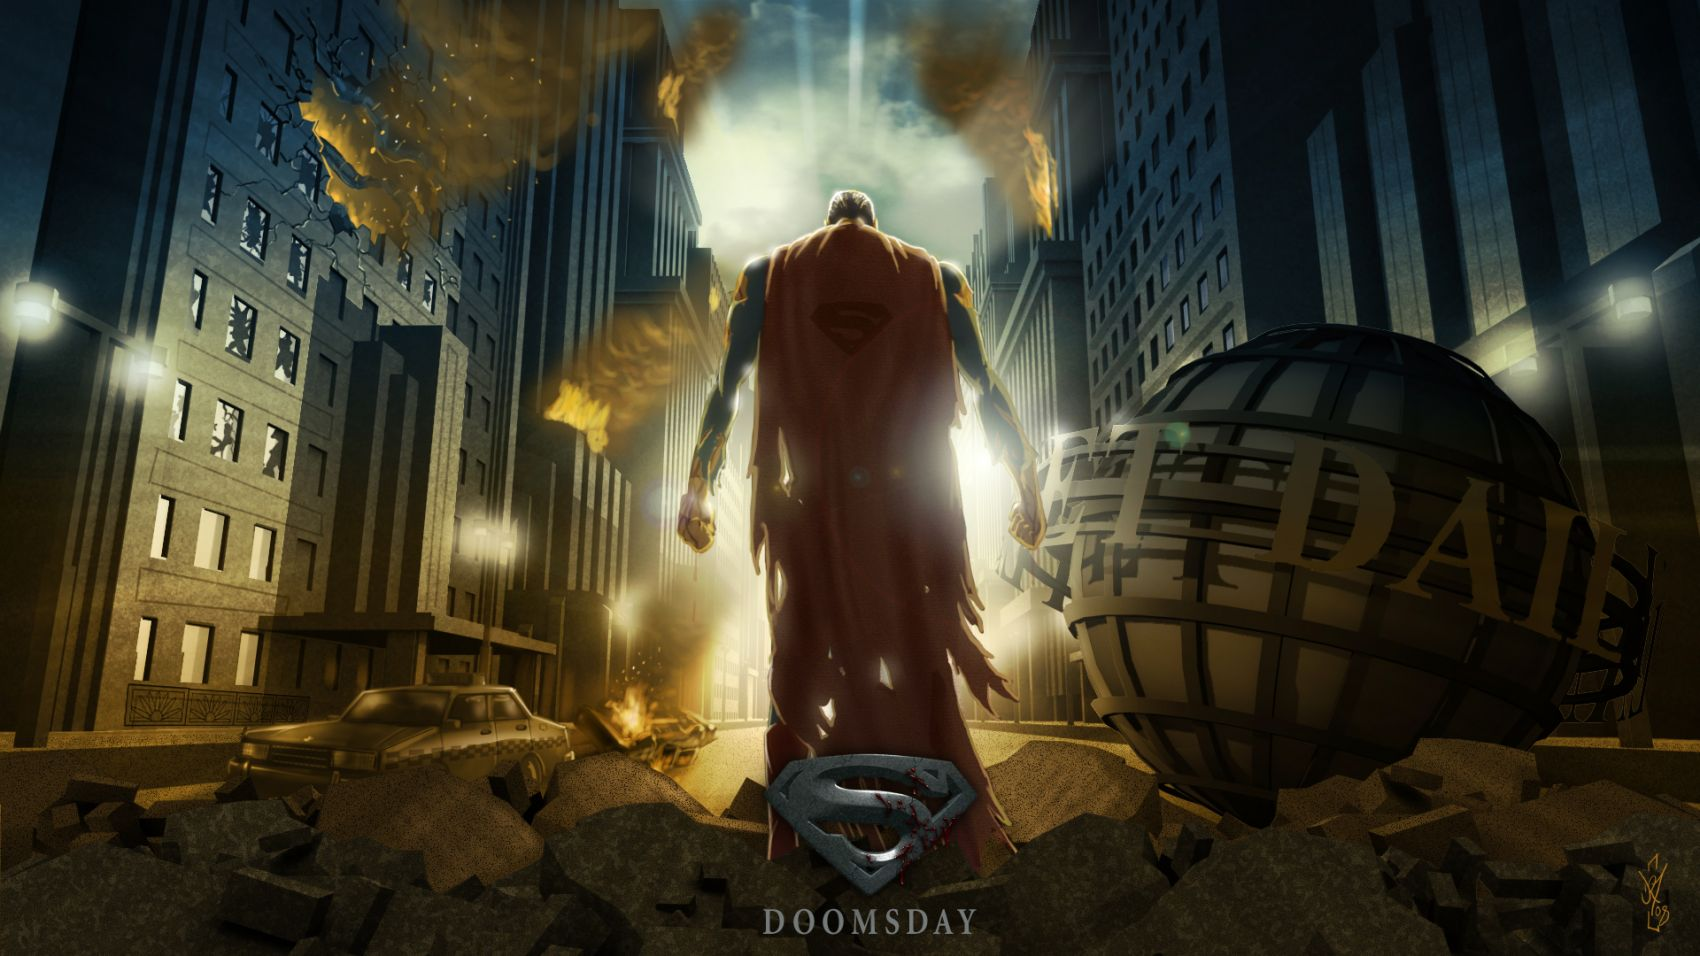 supermandoomsday.jpg